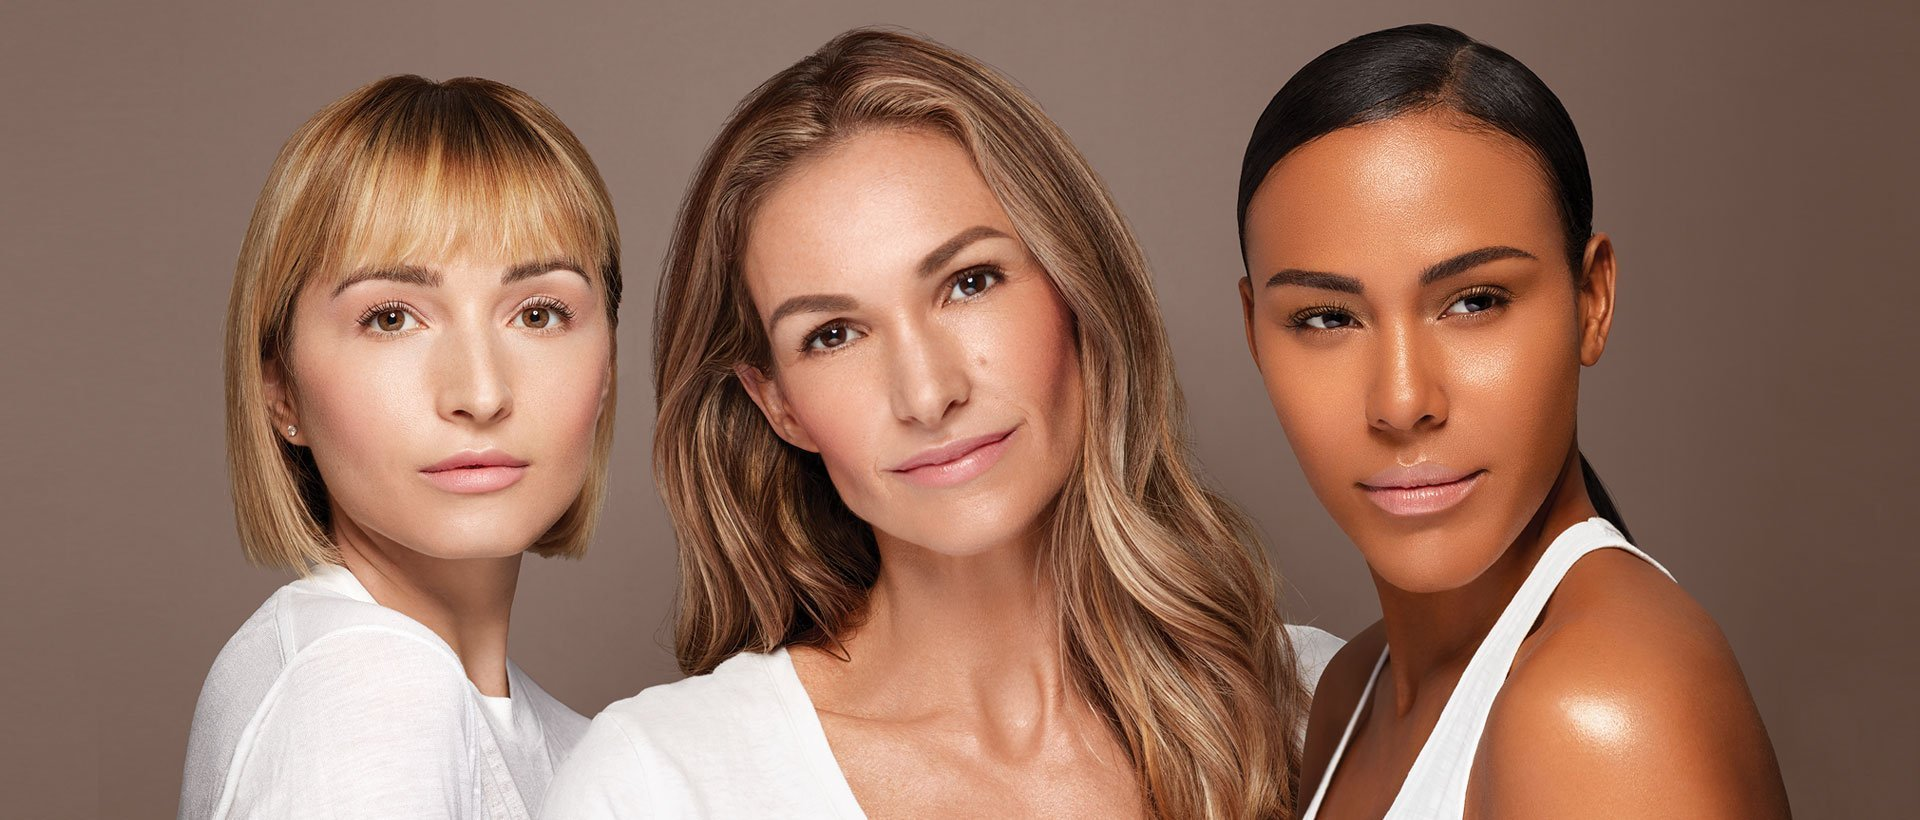 Veil Cosmetics Unveils Campaign With (Gasp!) Women Over 40 And Expands Distribution Globally